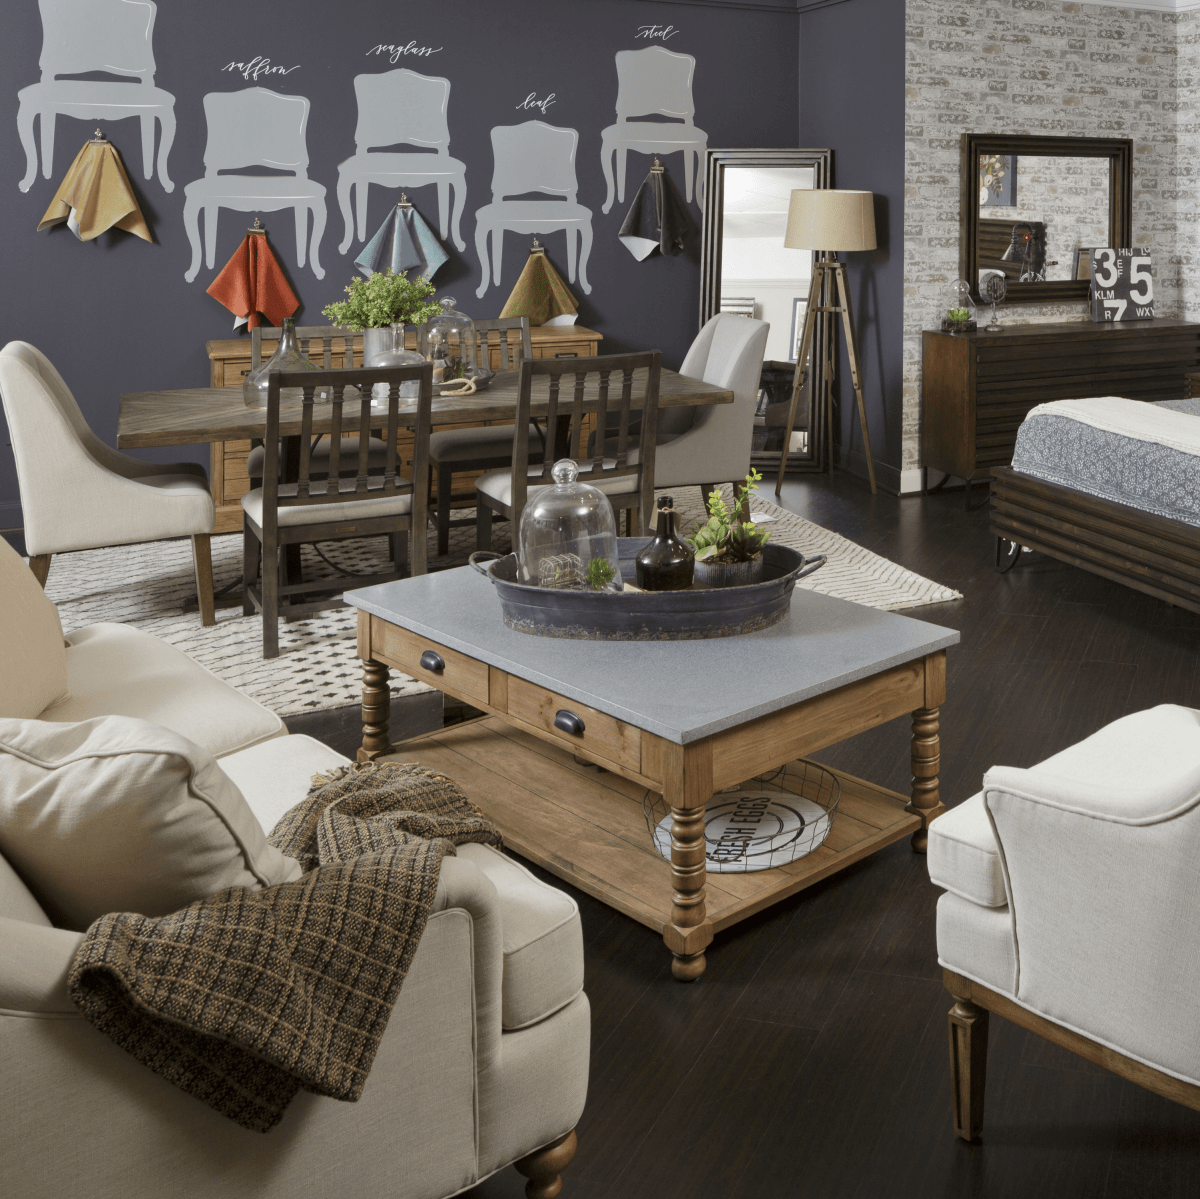 Magnolia Home furniture collection